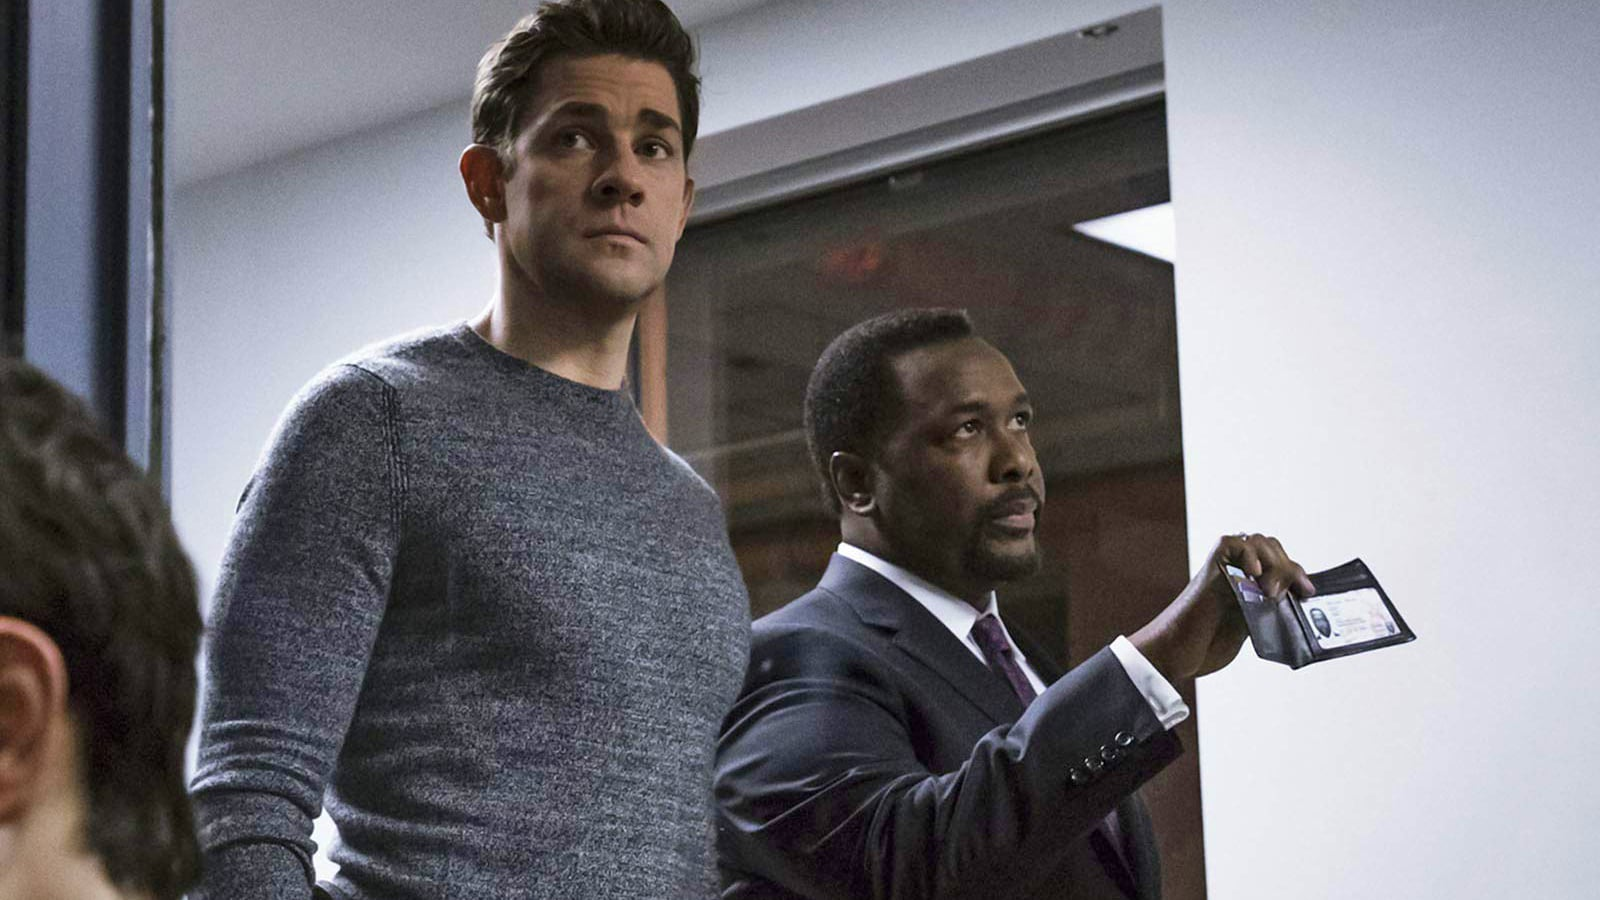 Jack Ryan Season 3 Cast Show's Instagram Page Confirms Return of James Greer